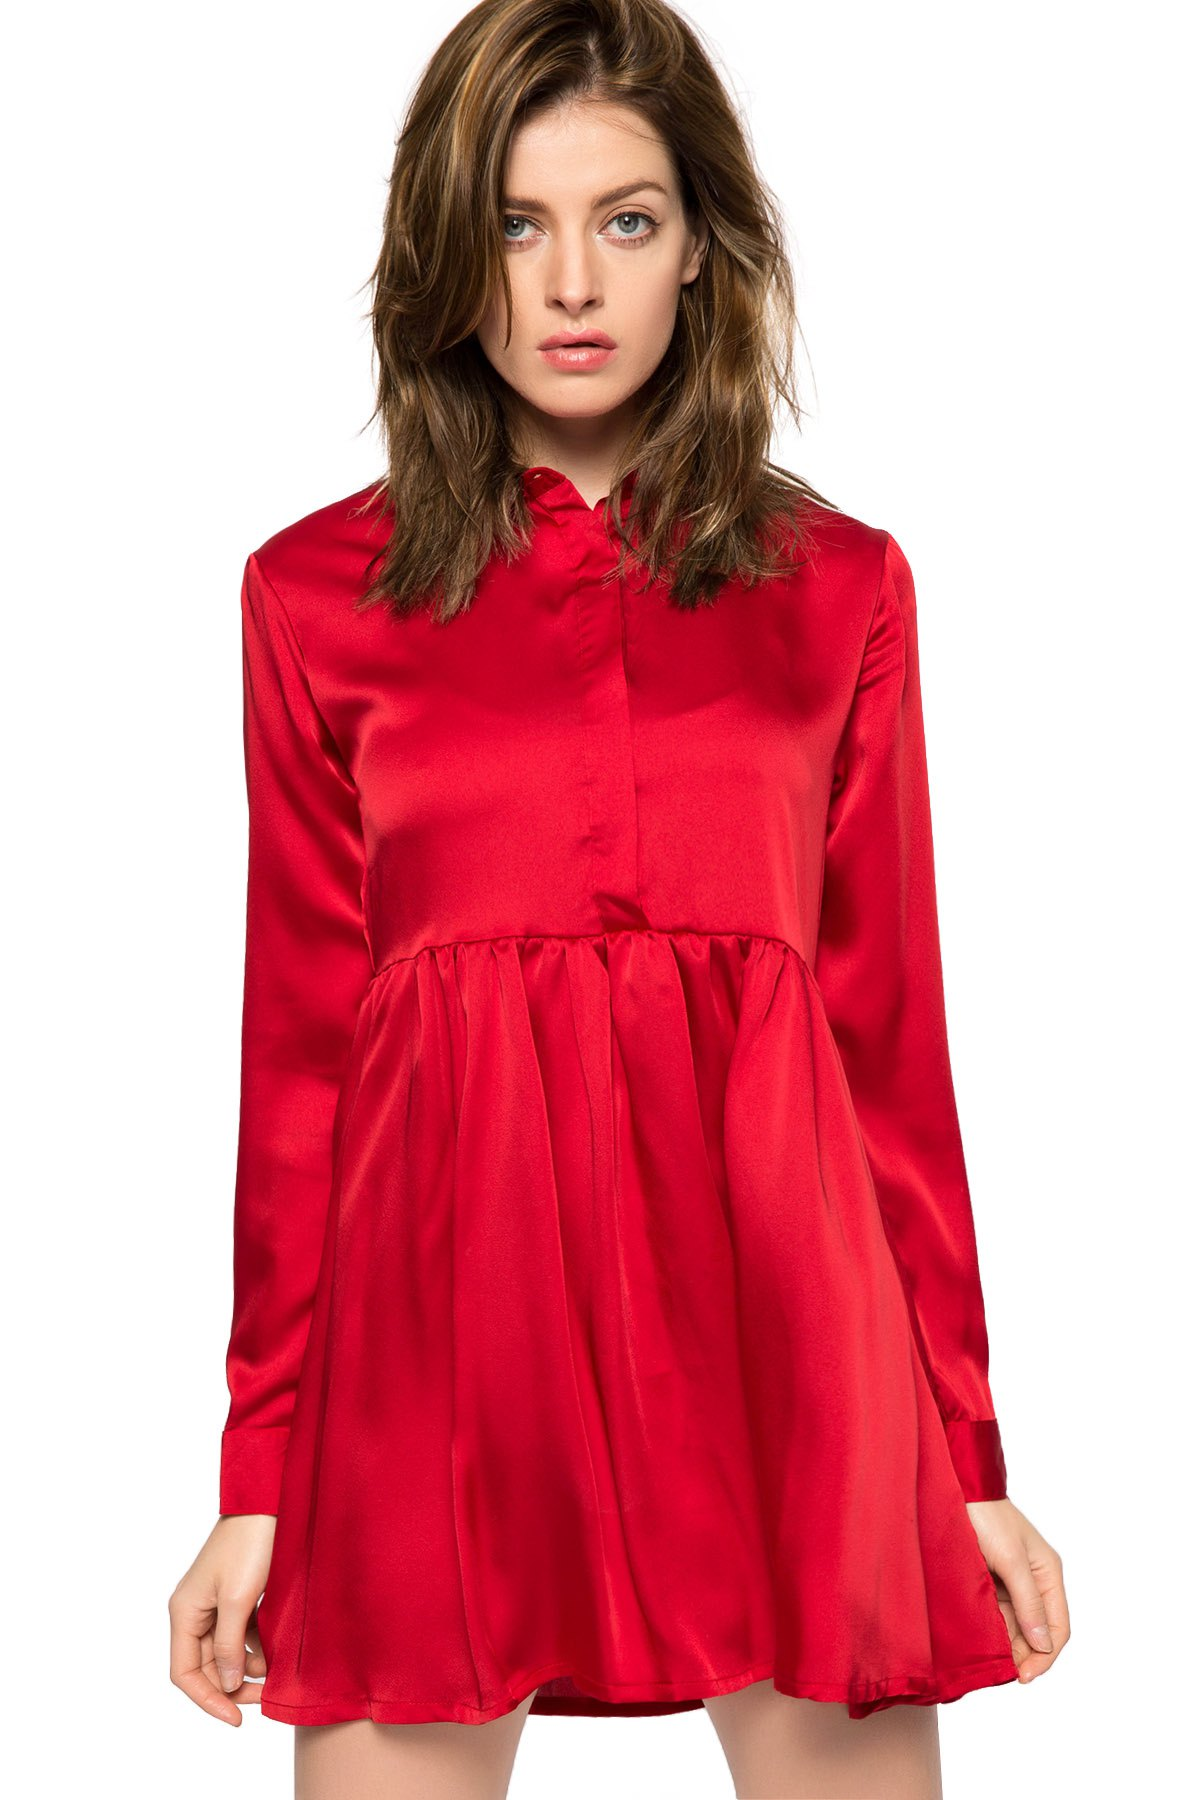 Red Turn-Down Collar Breasted Dress - RED XS